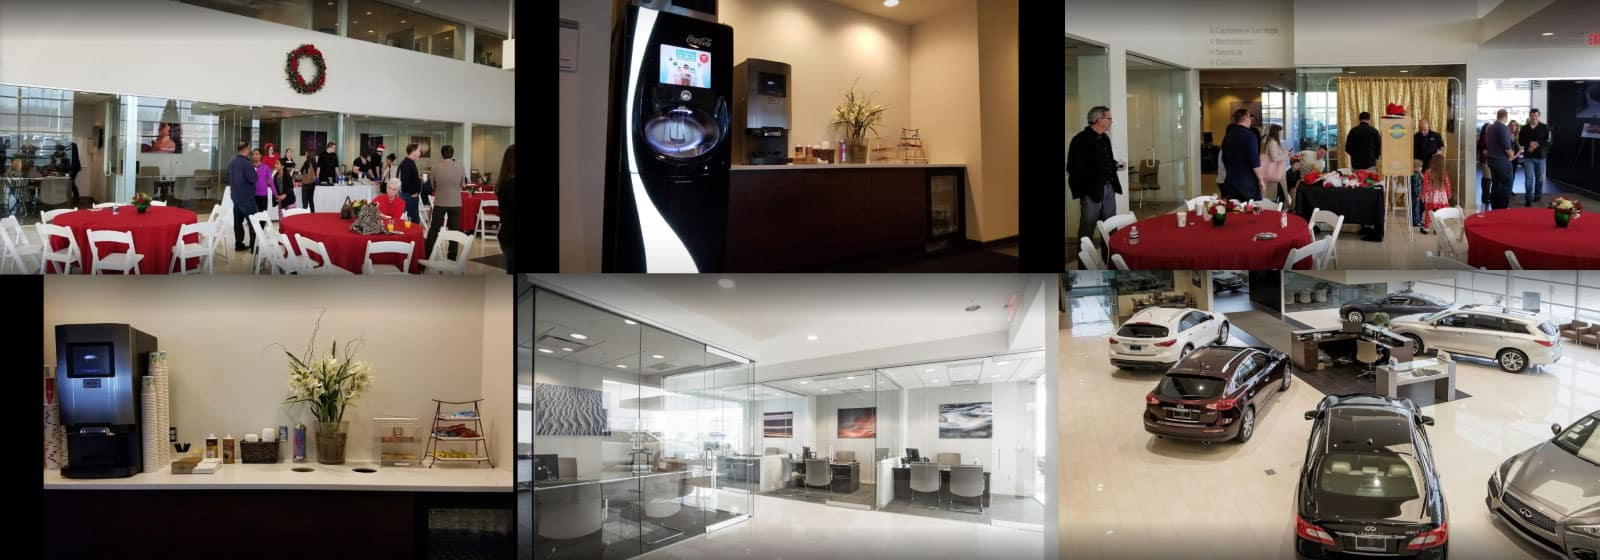 Amenities at INFINITI of Kansas City